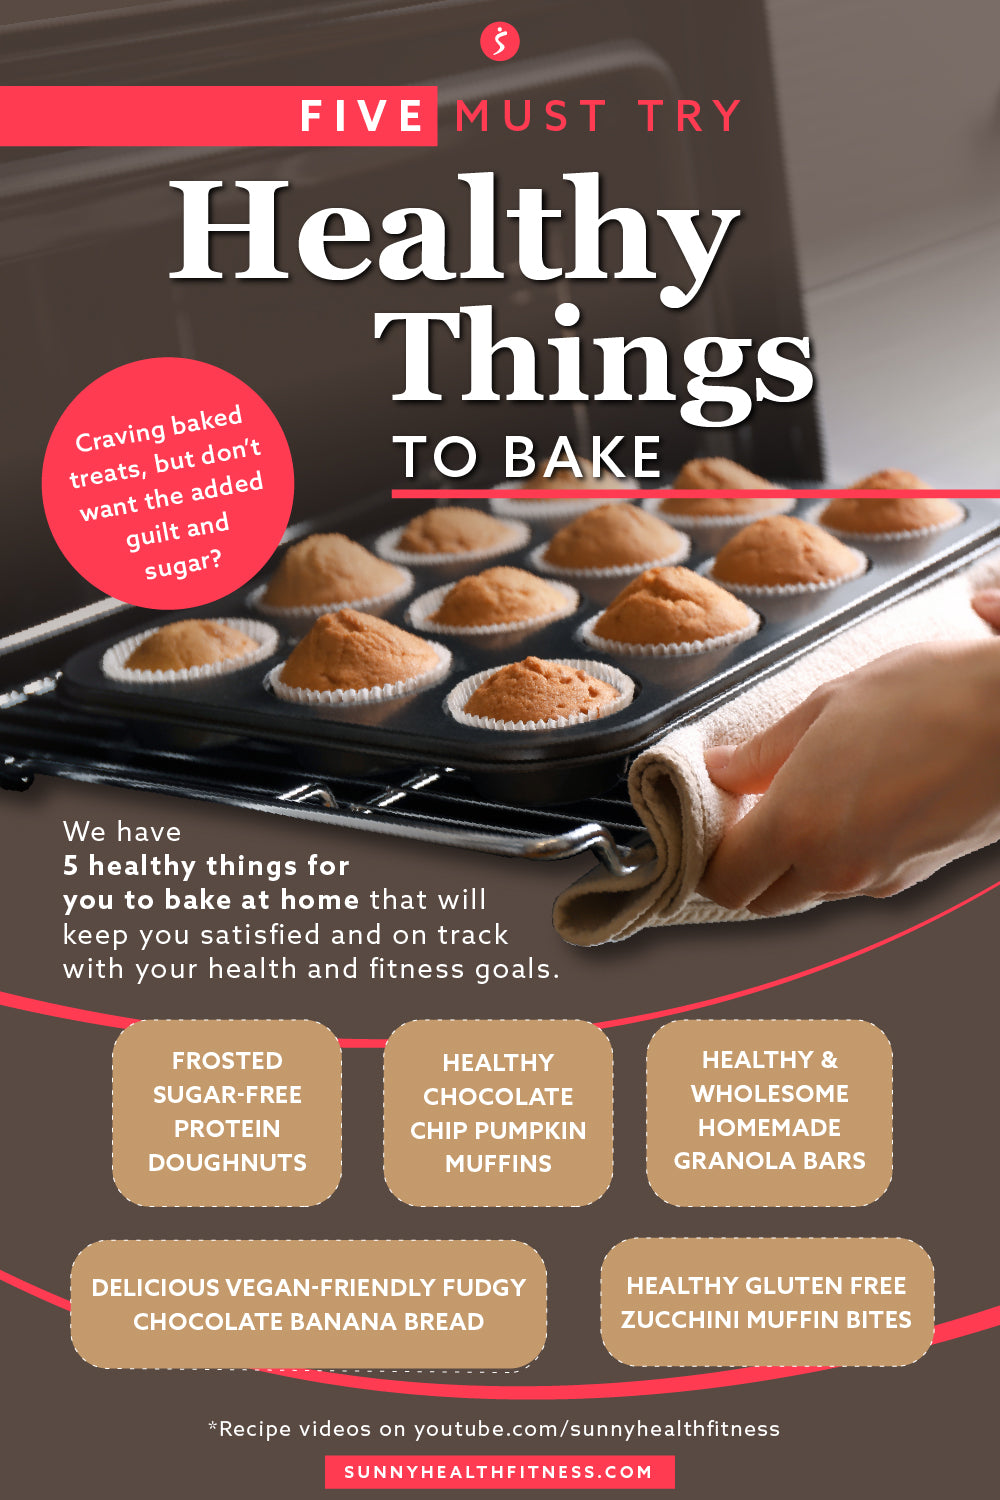 5 Must Try Healthy Things to Bake Infographic